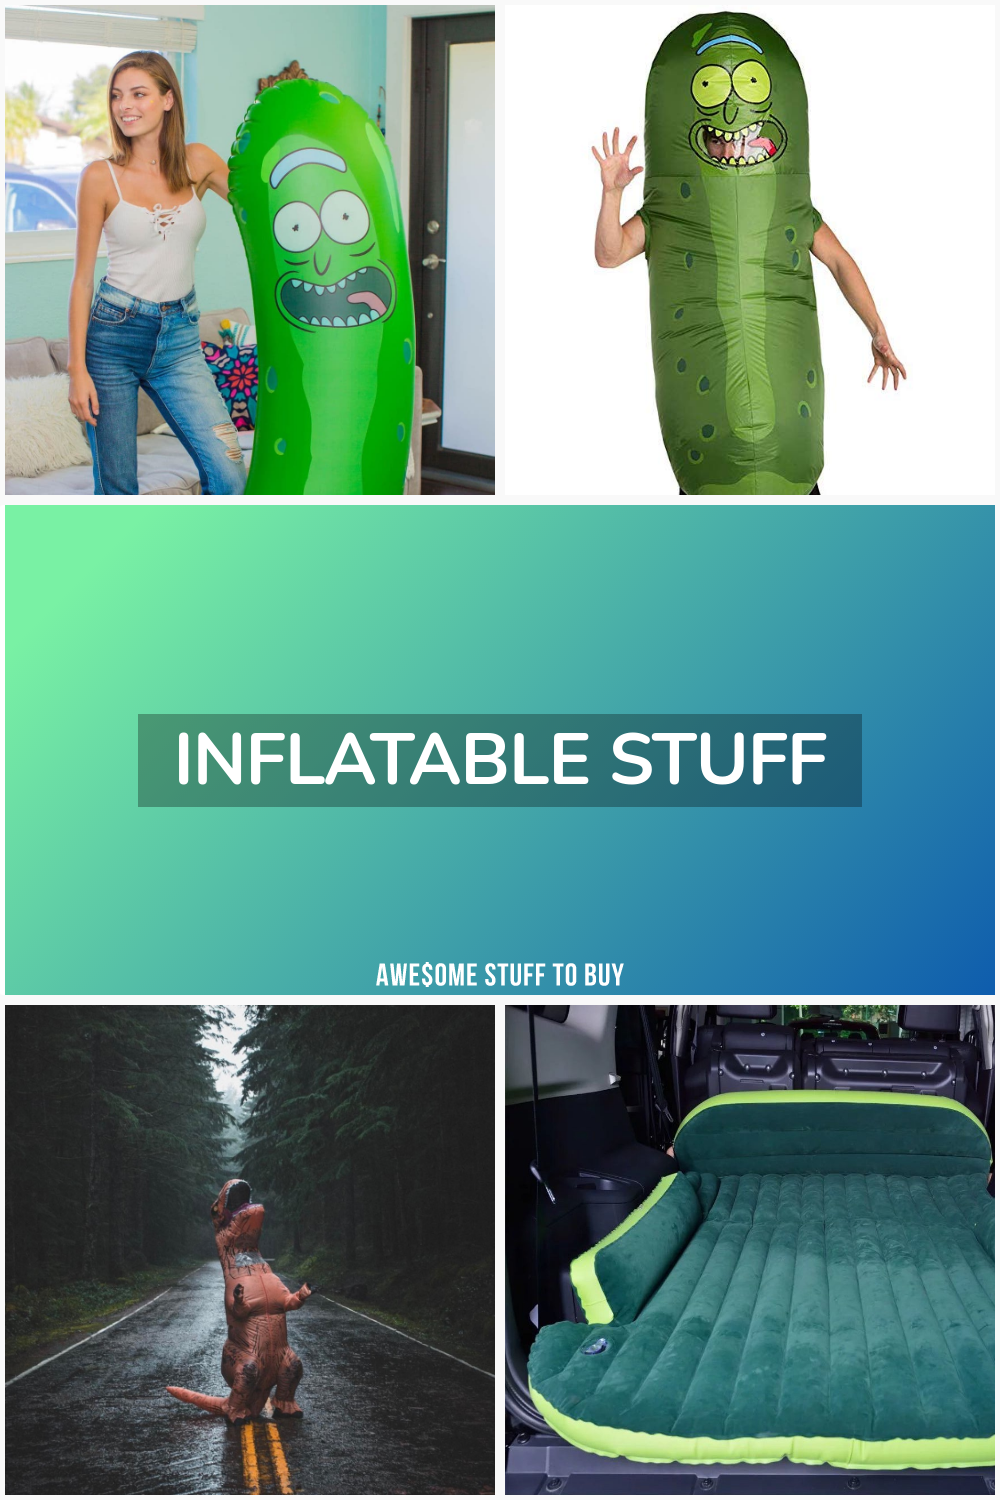 Inflatable Stuff // Awesome Stuff to Buy